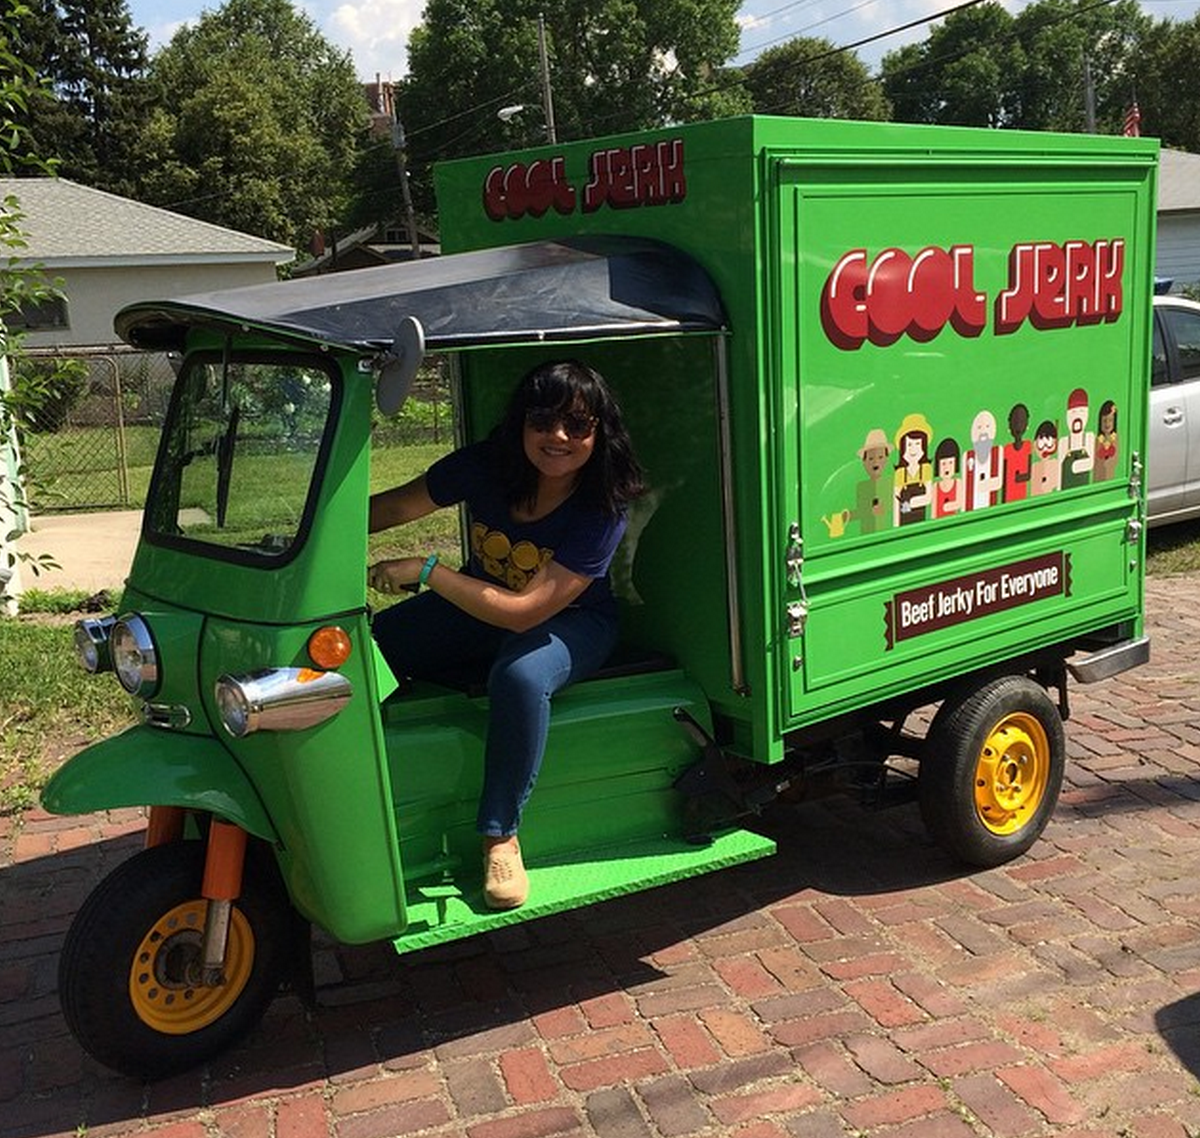 Cool Jerk's official tuk-tuk from Thailand - photo via @Mike2600 instagram